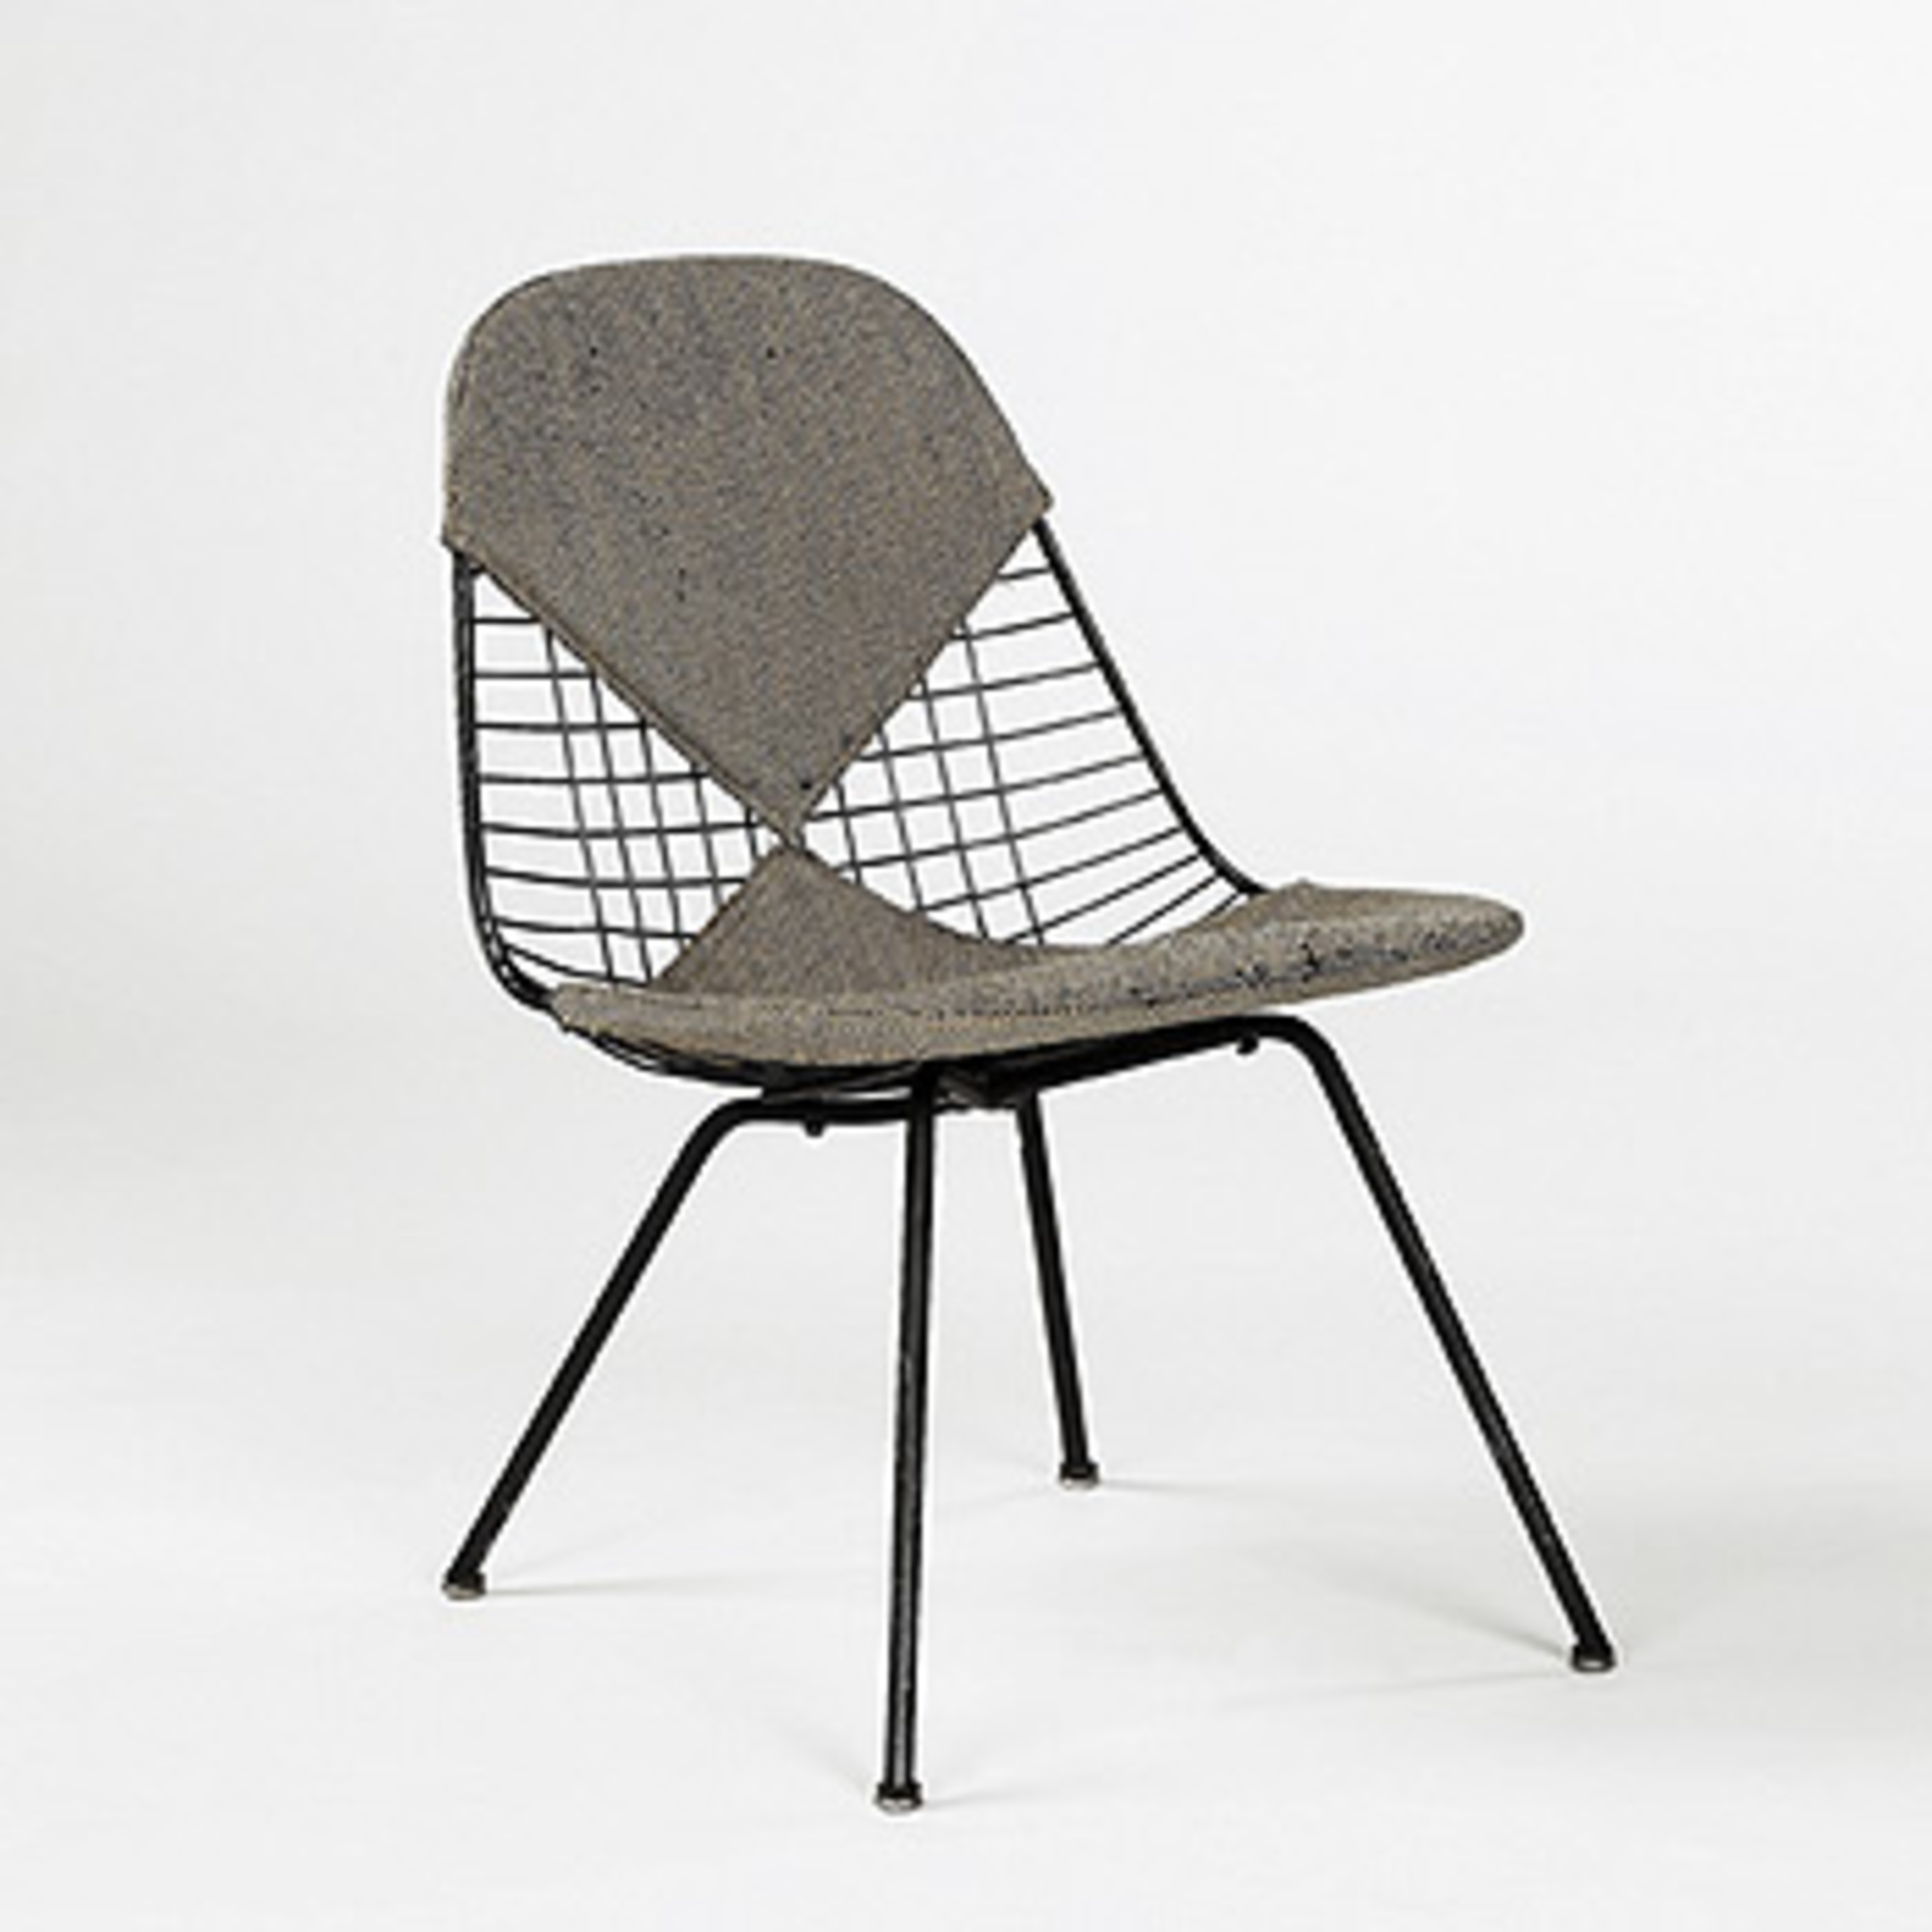 195: CHARLES AND RAY EAMES, Wire Mesh Chair U003c Modern Design, 6 October 2002  U003c Auctions | Wright: Auctions Of Art And Design